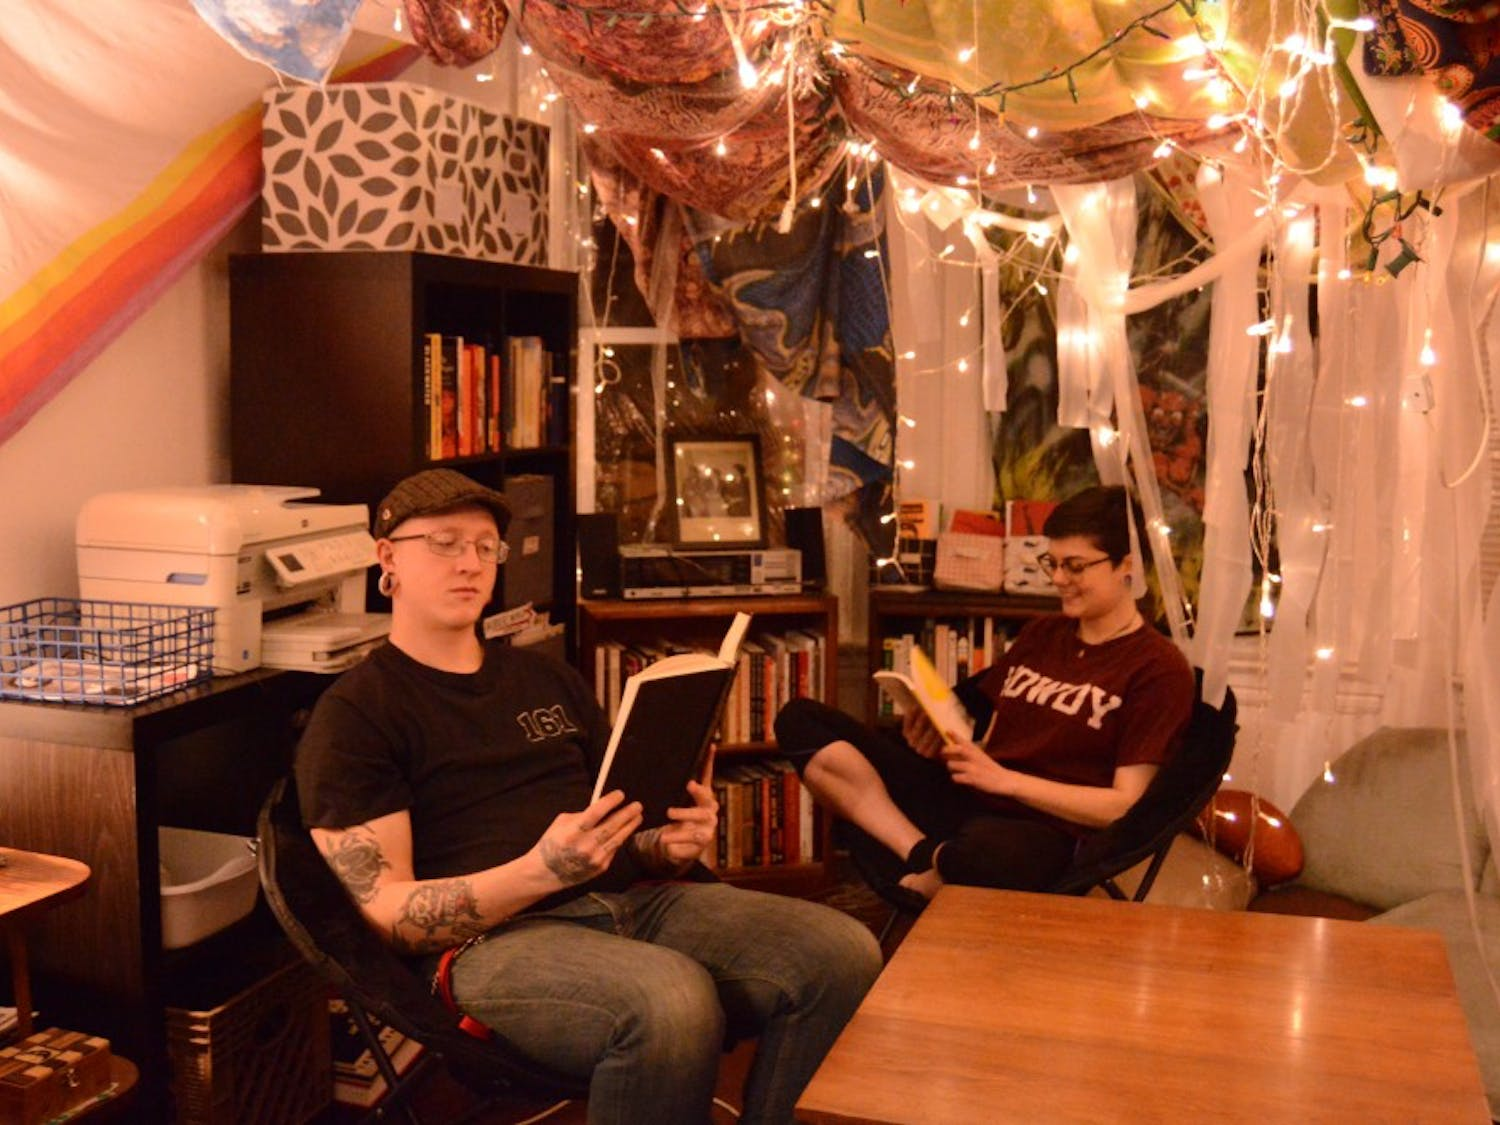 Residents of the Q3C Co-op sit in their community library. Co-ops offer an alternative housing option for many young people.